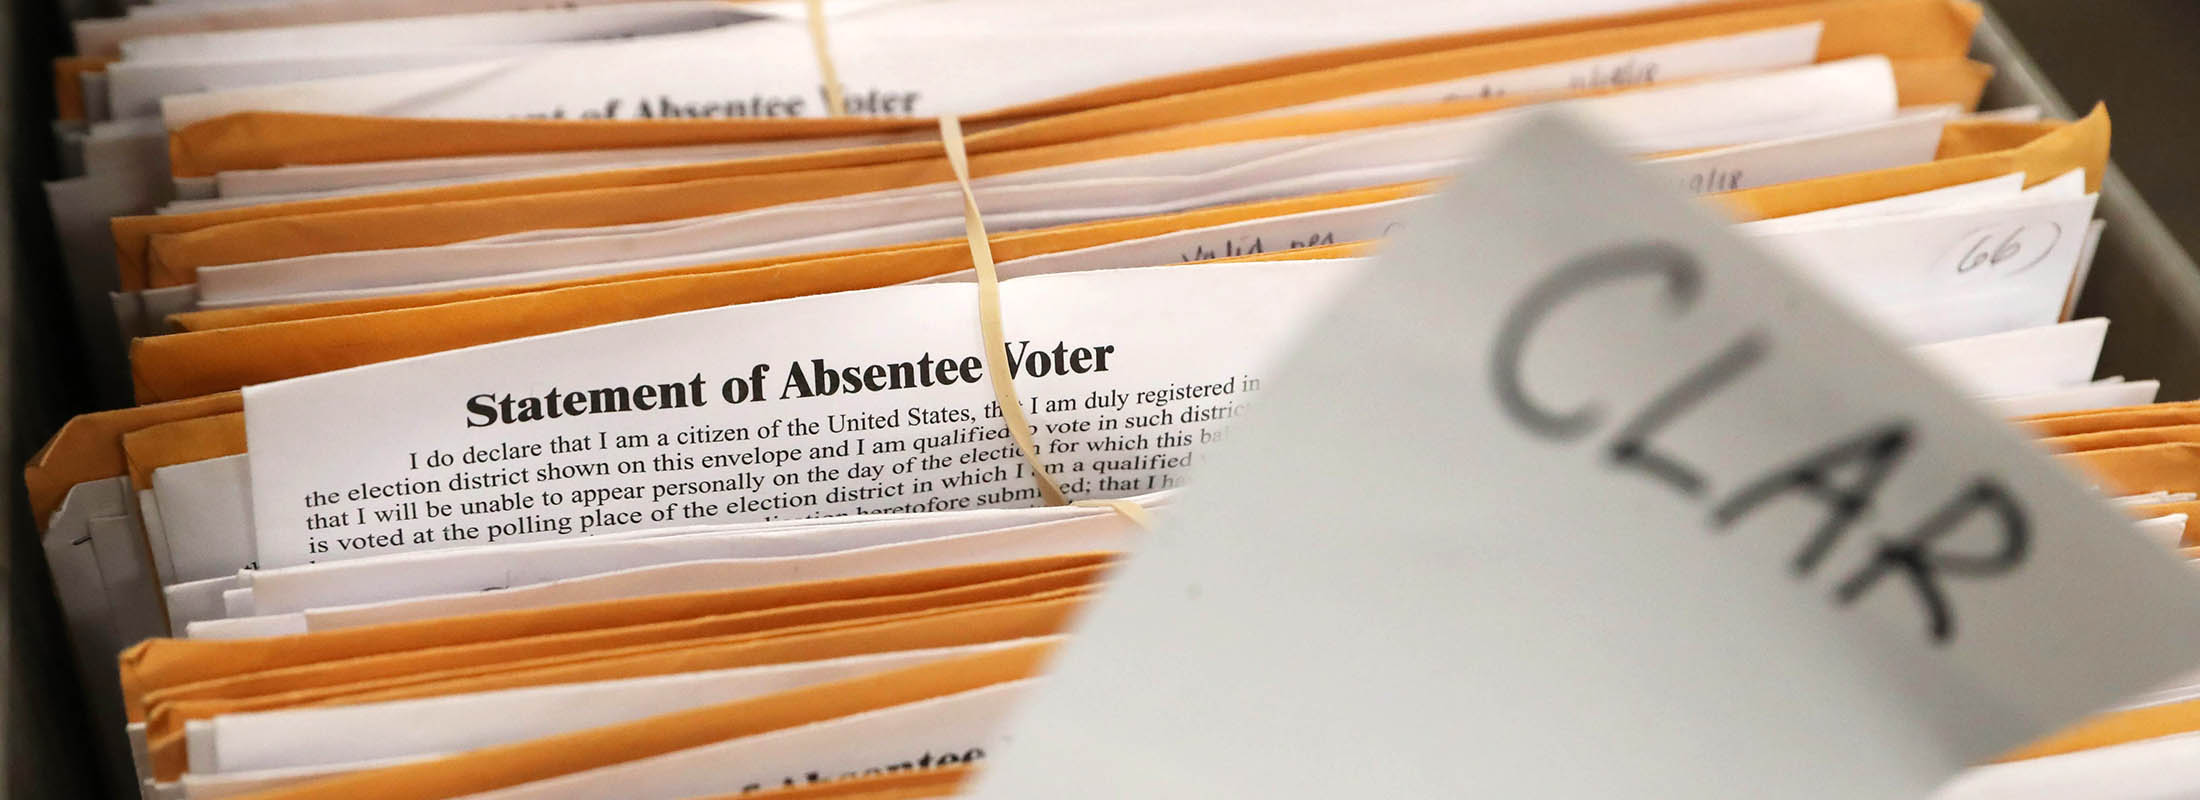 A bipertisan team from the Erie County Board of Elections began their count of the 2018 absentee ballots, Tuesday, Nov. 20, 2018. They began with the 5588 ballots from the 27th District. A cart is filled with ballots. These are ballots from Clarence. (Sharon Cantillon/Buffalo News)